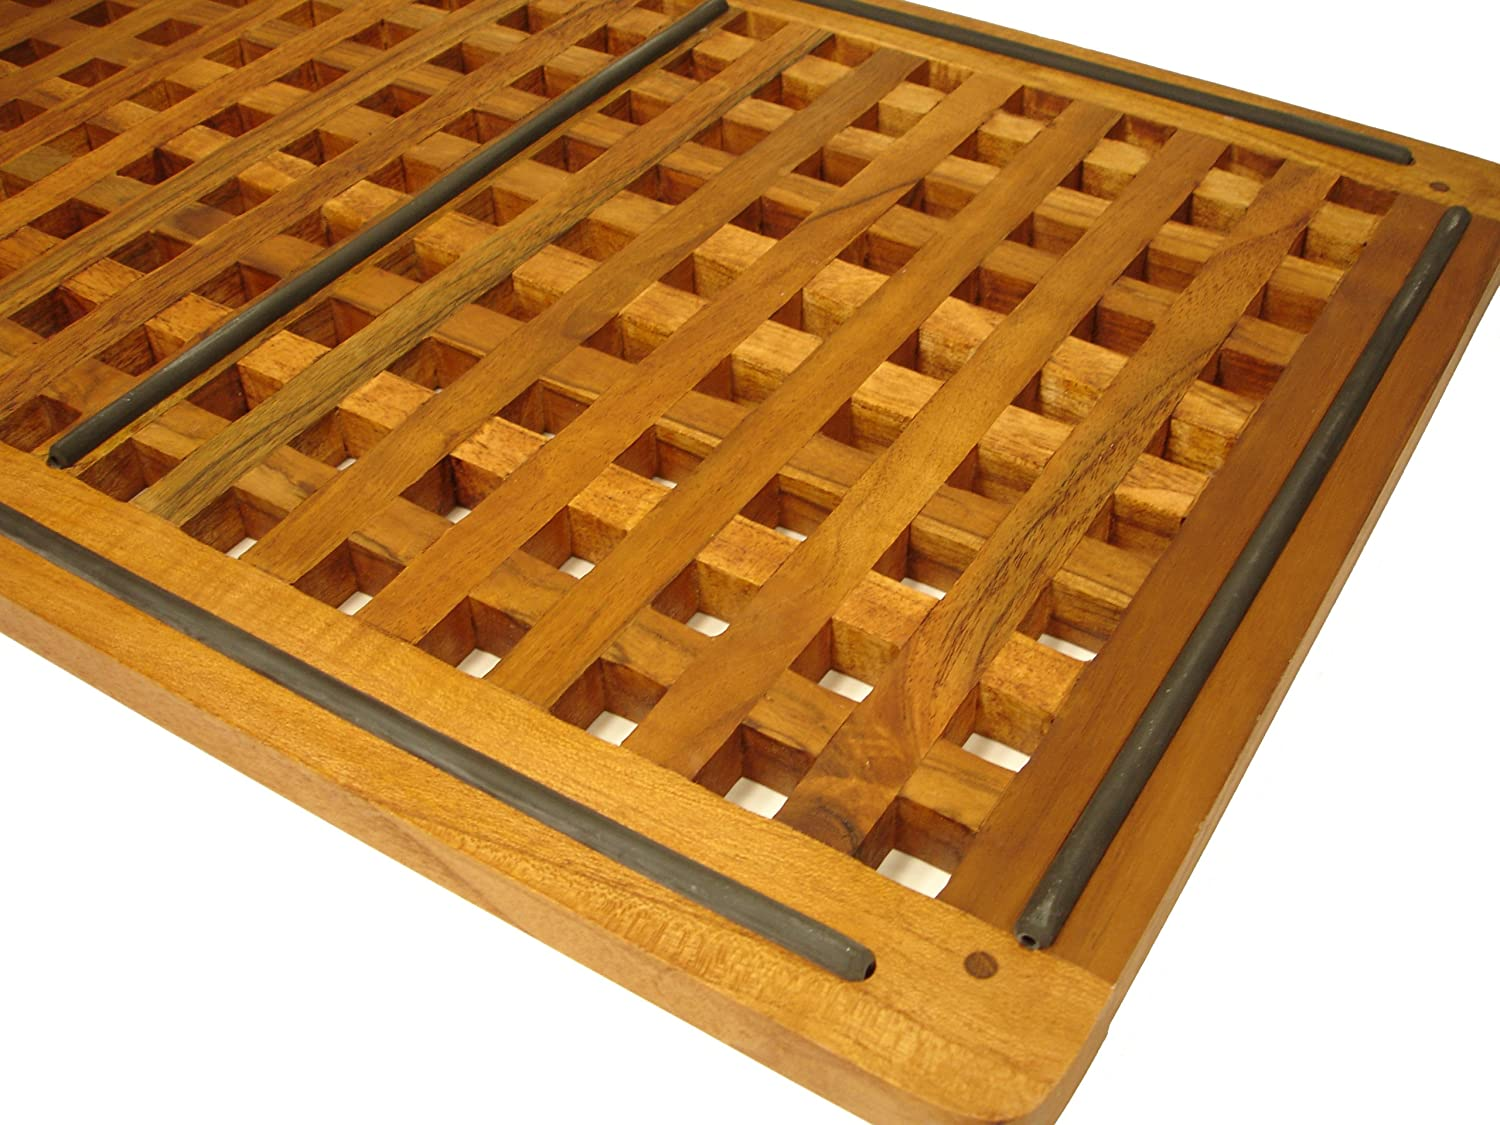 Amazoncom The Original Teak Grate Bath Shower Mat Home Kitchen - Rubber grate flooring